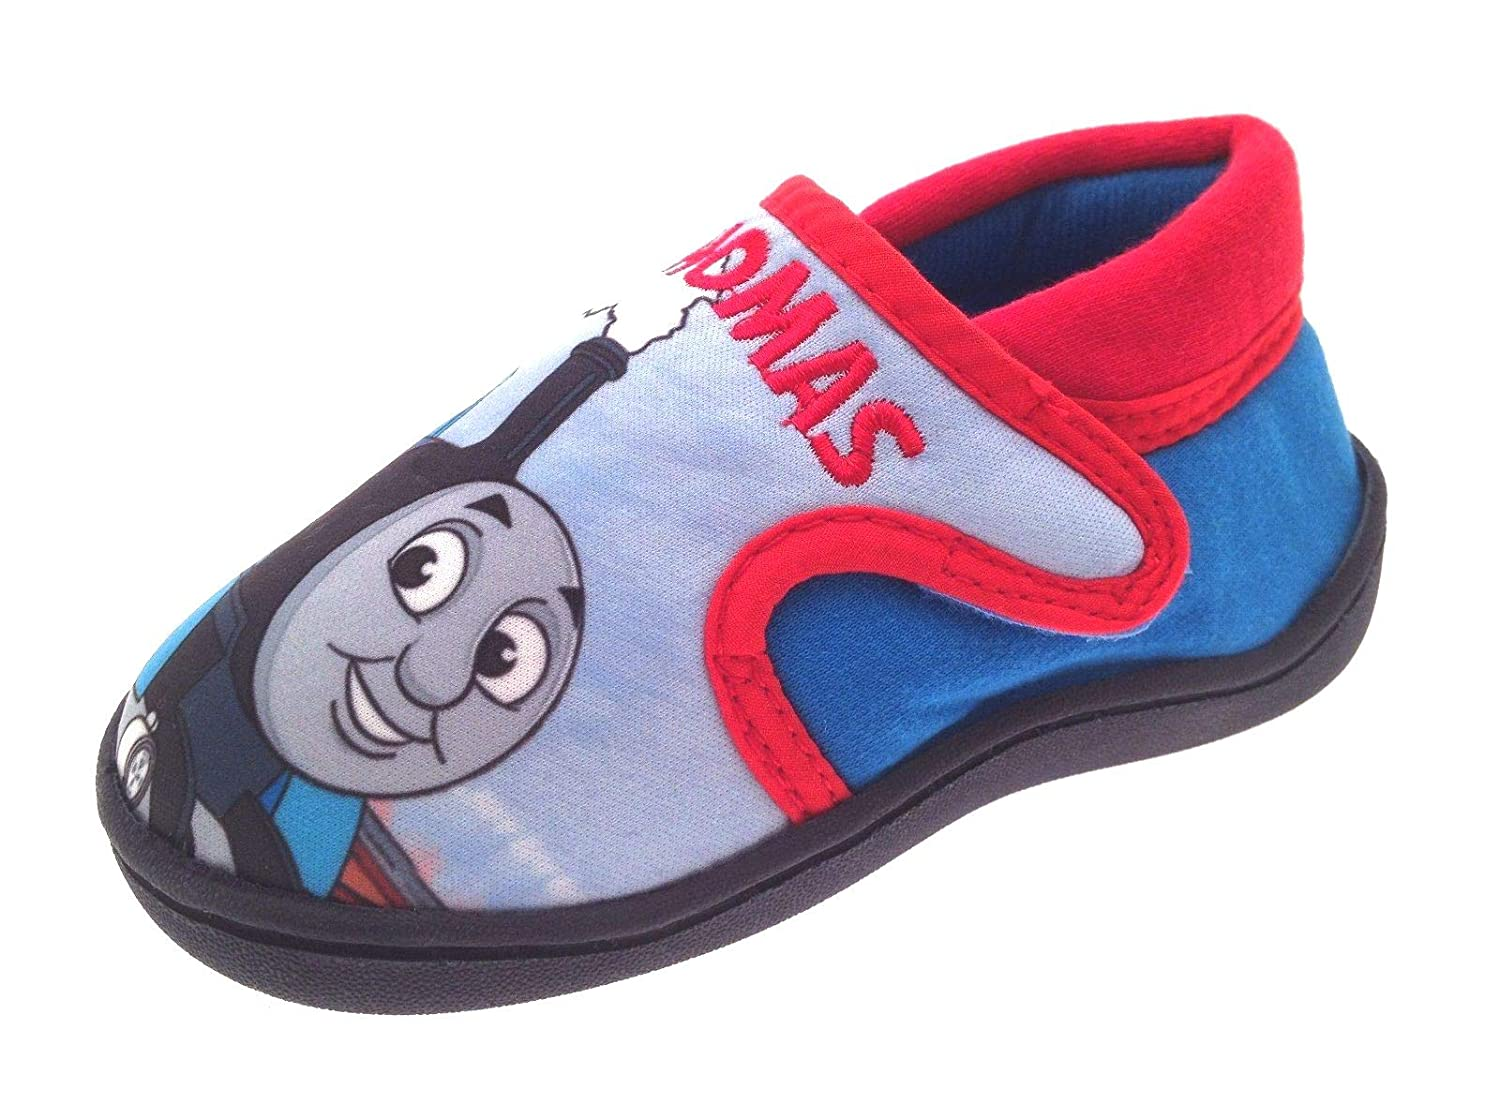 Thomas The Tank Engine Slippers Easy Wear Touch Fastening